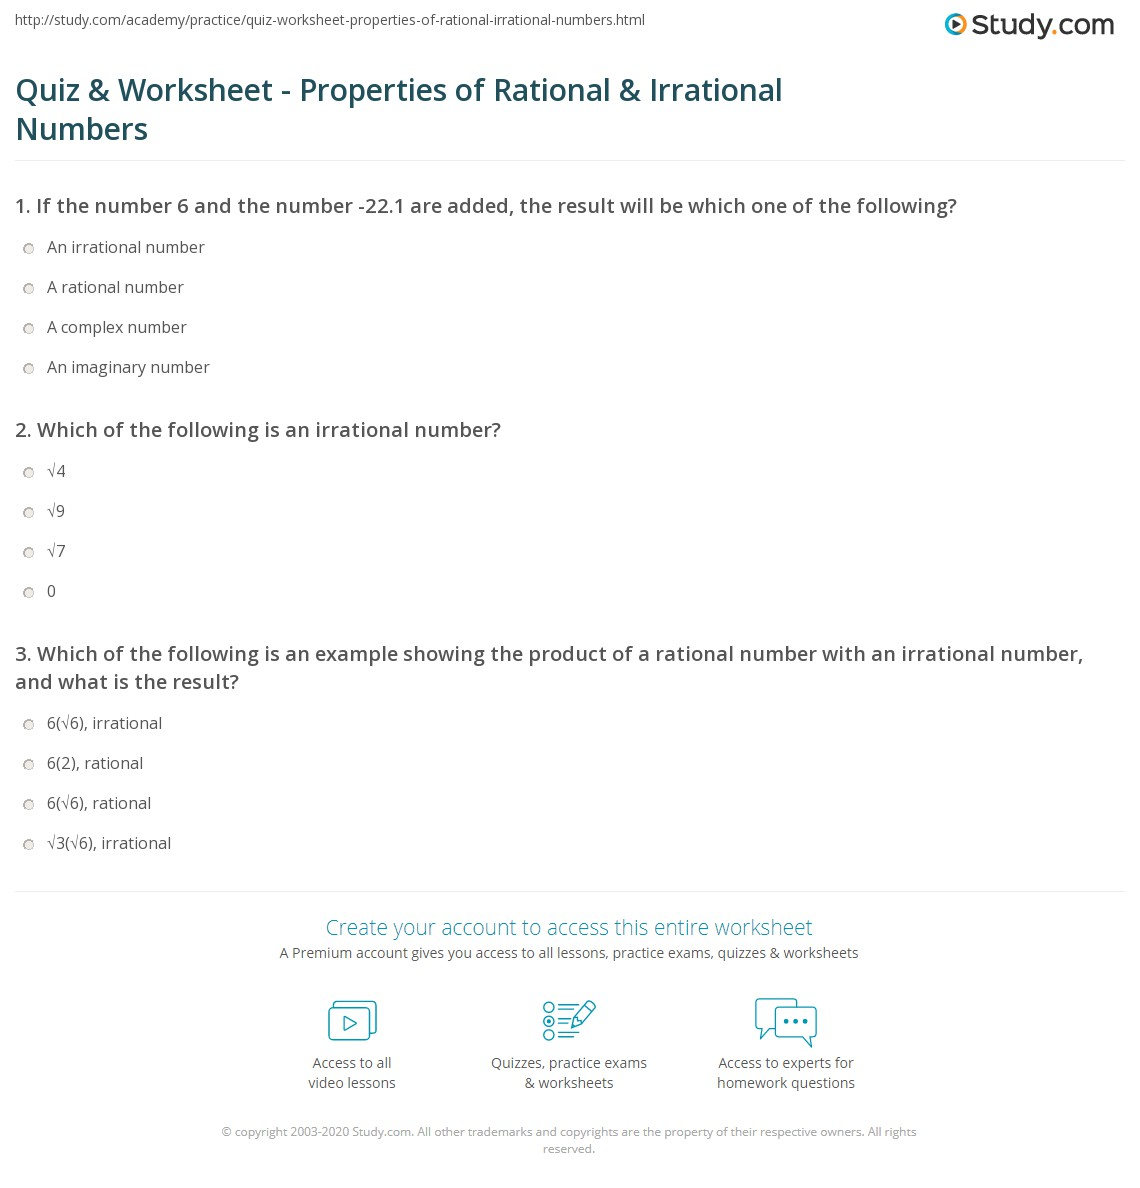 Worksheets Rational And Irrational Worksheets quiz worksheet properties of rational irrational numbers print worksheet